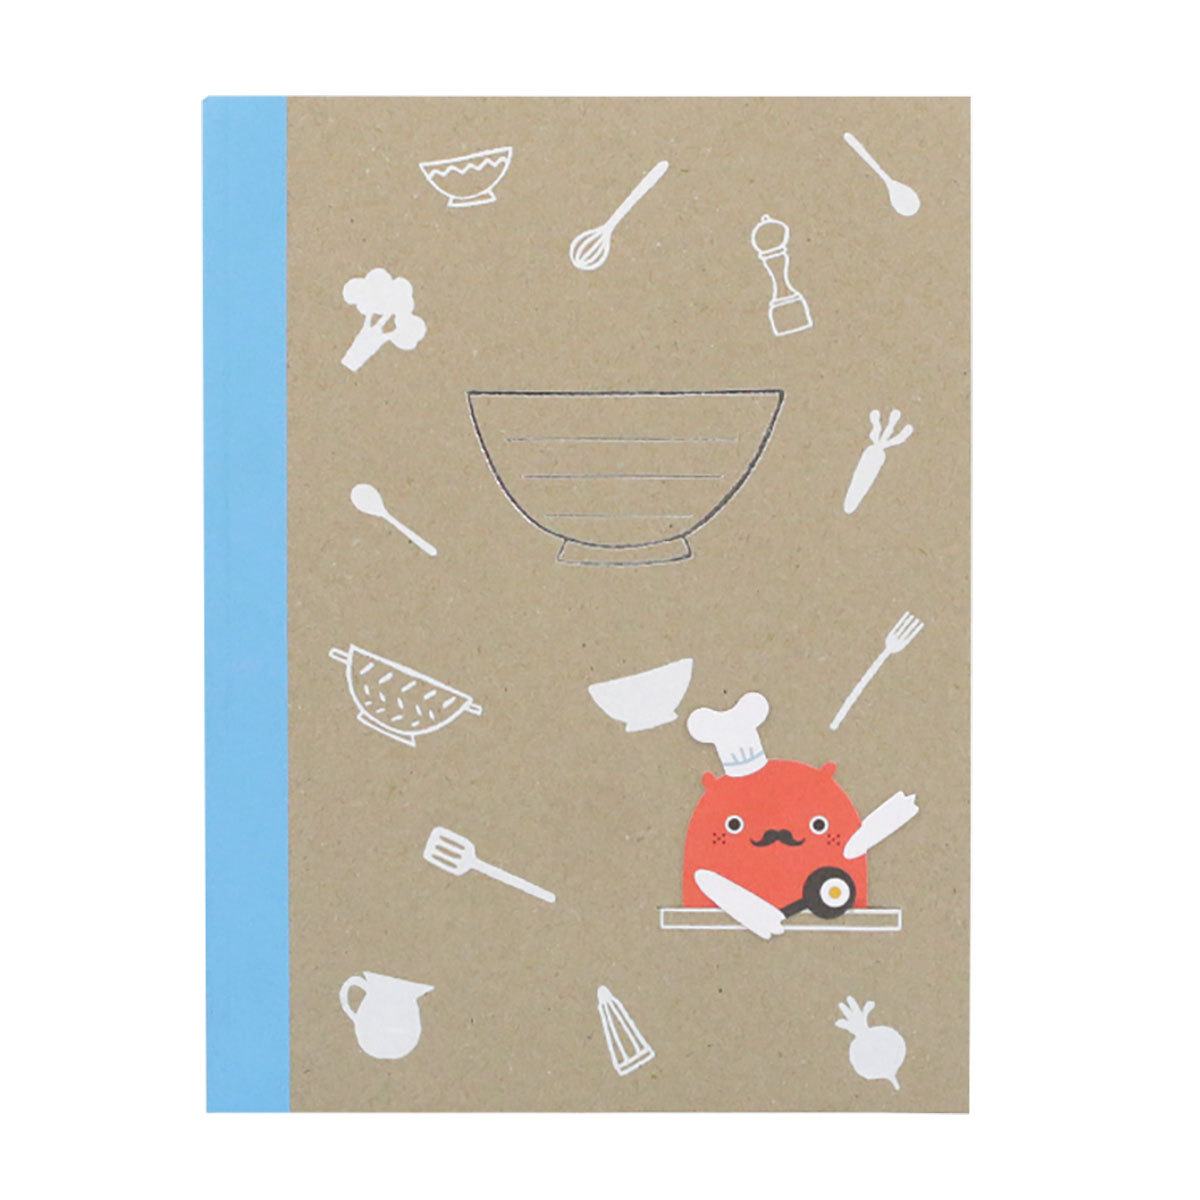 Livre & Carte Carnet de Notes - Home Carnet de Notes - Home